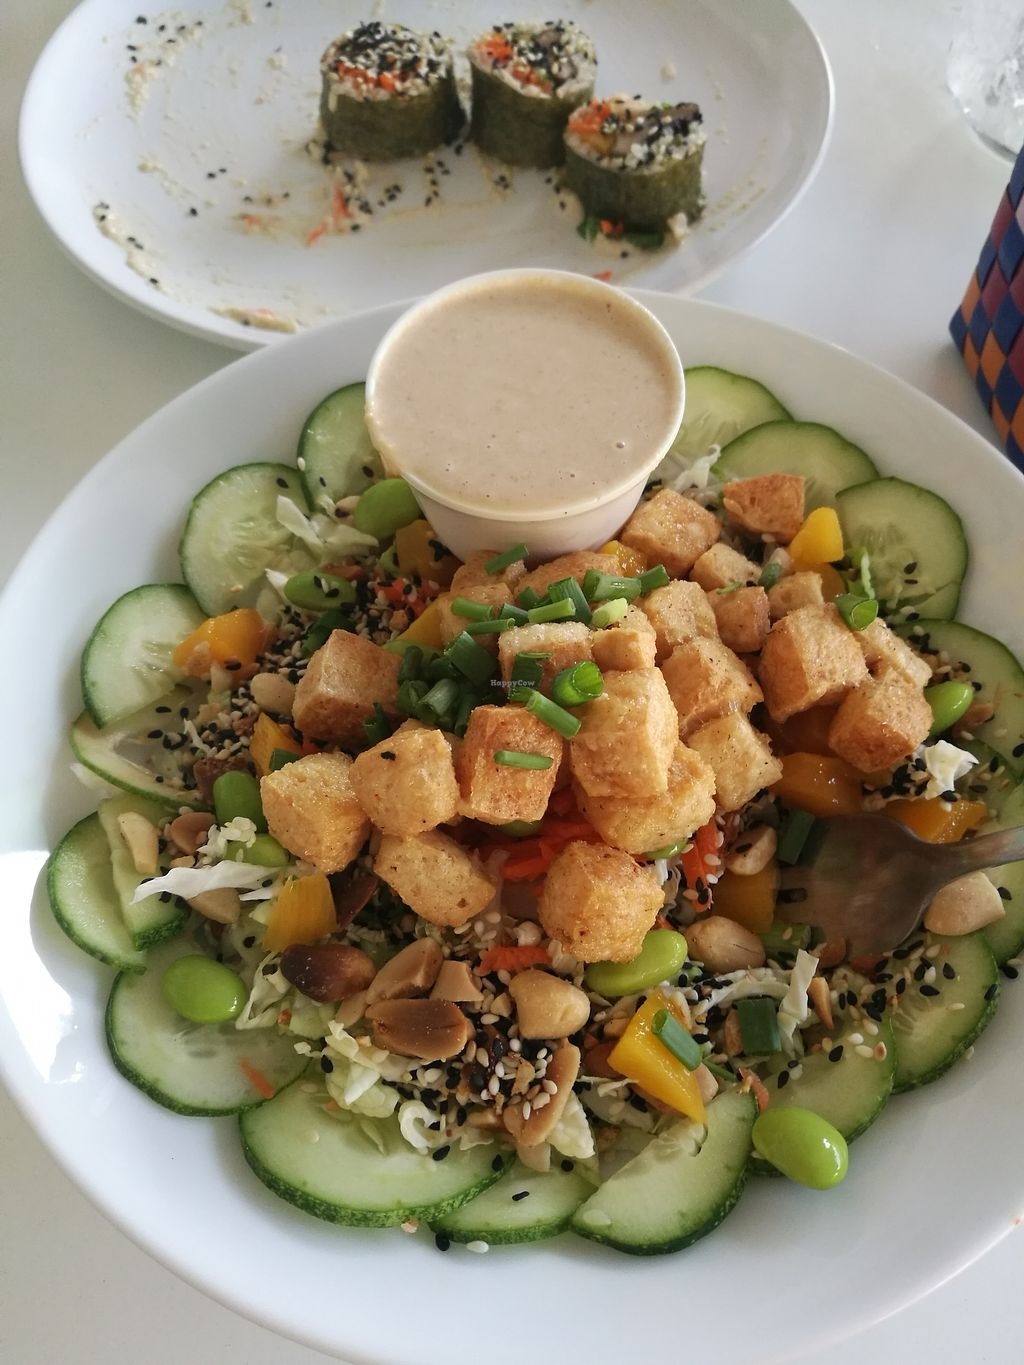 """Photo of VegetaBowl  by <a href=""""/members/profile/Lyssi"""">Lyssi</a> <br/>Napa salad 150b <br/> February 26, 2018  - <a href='/contact/abuse/image/64003/364134'>Report</a>"""